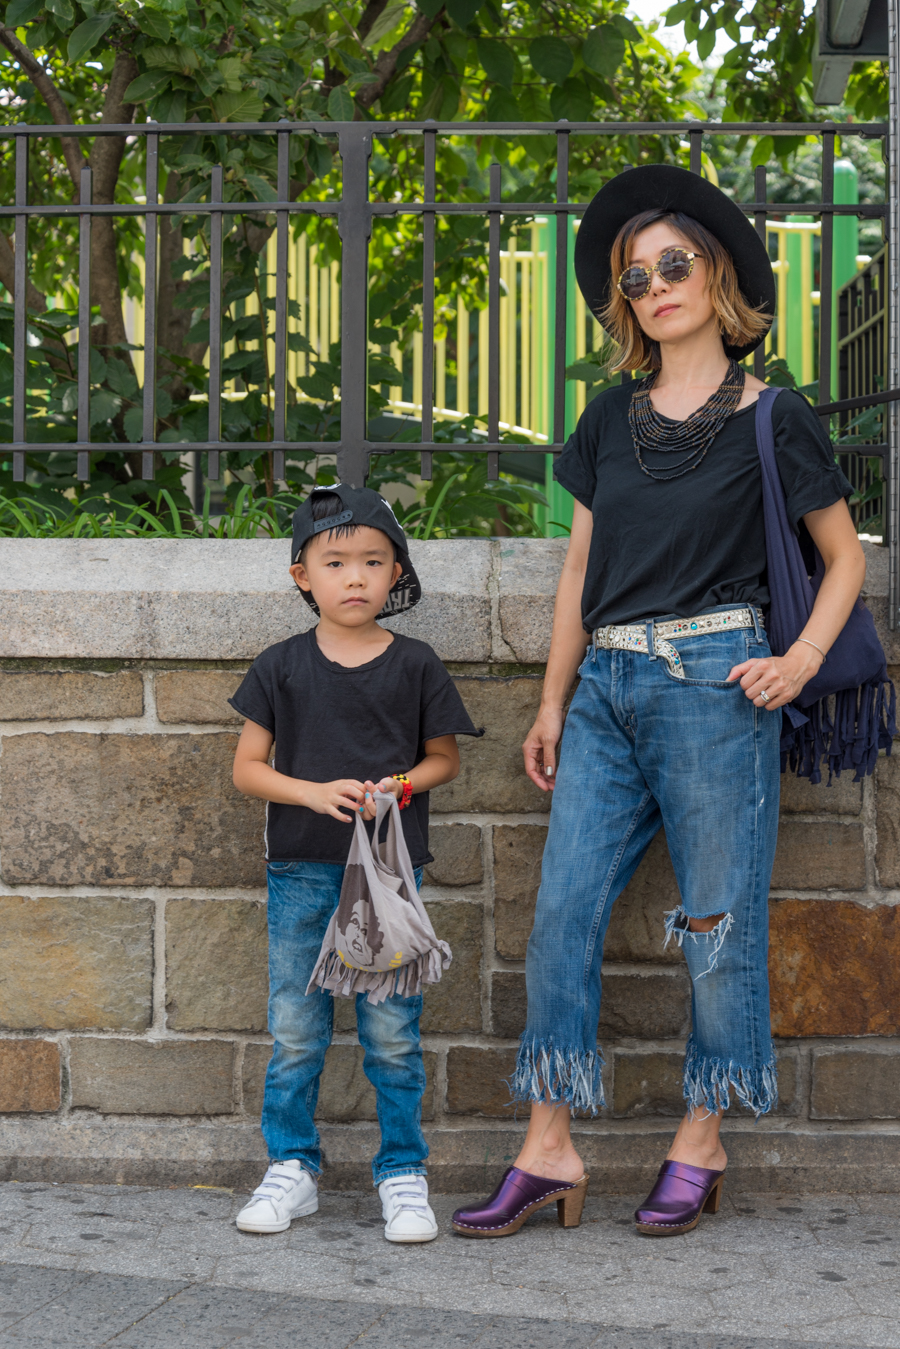 ROCK MAMA NYC LIFESTYLEBLOG -  I LOVE REMAKING CLOTHES